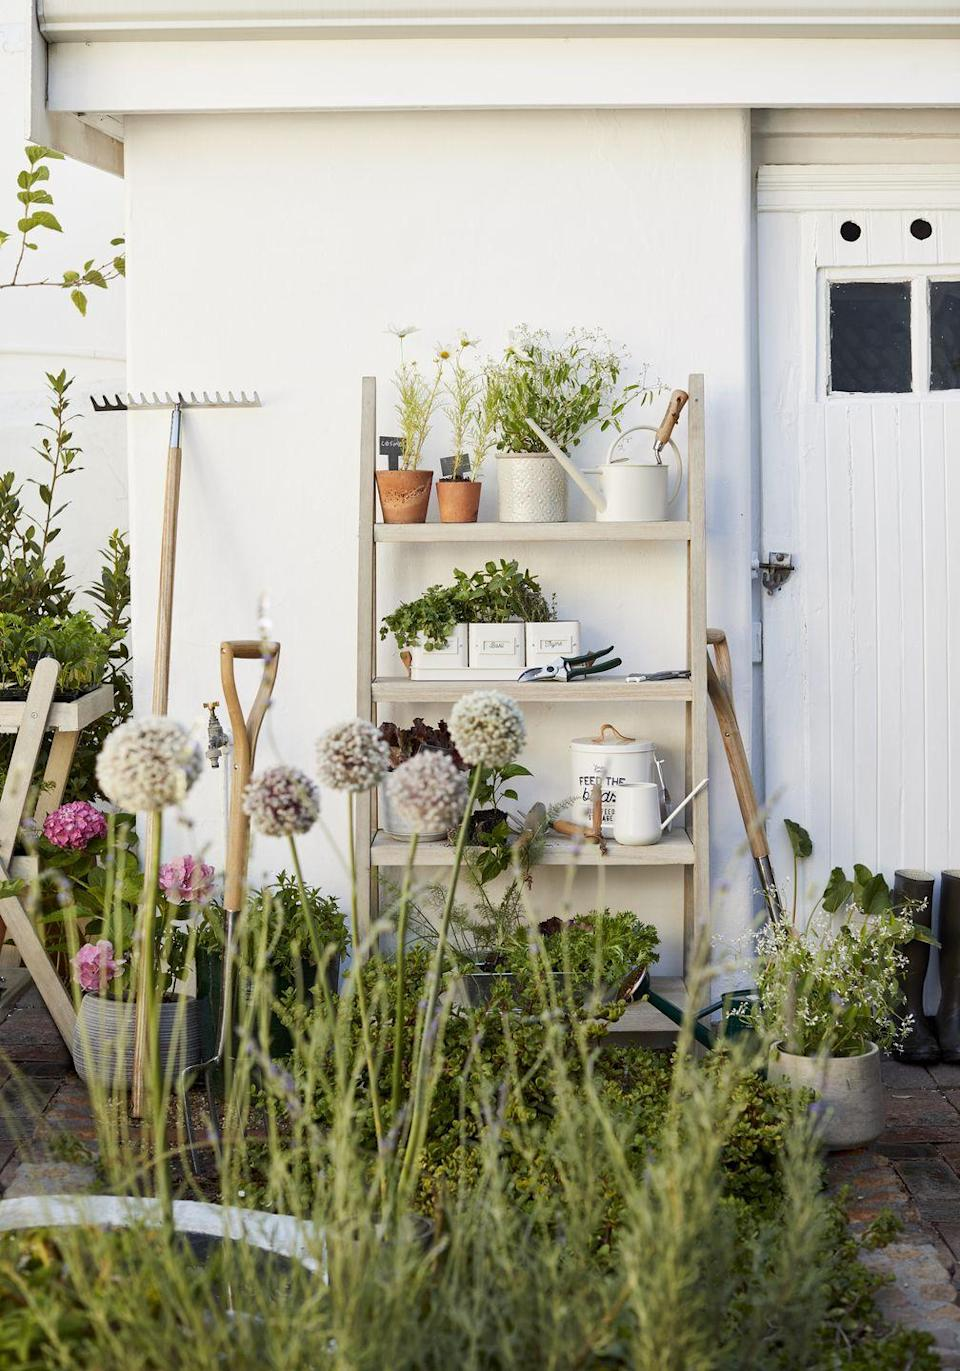 """<p>As the weather warms up, it's the ideal time to slip on your gardening gloves and tend to your outdoor space. Designed with four shelves of varying depths, this ladder-style shelving unit is ideal for neatly displaying pots, <a href=""""https://www.countryliving.com/uk/homes-interiors/interiors/g33454786/bathroom-plants/"""" rel=""""nofollow noopener"""" target=""""_blank"""" data-ylk=""""slk:plants"""" class=""""link rapid-noclick-resp"""">plants</a> and garden accessories.</p><p><a class=""""link rapid-noclick-resp"""" href=""""https://go.redirectingat.com?id=127X1599956&url=https%3A%2F%2Fwww.johnlewis.com%2Fjohn-lewis-partners-burford-garden-tall-garden-shelf-ladder-fsc-certified-eucalyptus-wood%2Fp3809267&sref=https%3A%2F%2Fwww.countryliving.com%2Fuk%2Fhomes-interiors%2Fgardens%2Fg35933581%2Fjohn-lewis-garden-collection-spring-summer%2F"""" rel=""""nofollow noopener"""" target=""""_blank"""" data-ylk=""""slk:SHOP NOW"""">SHOP NOW</a></p>"""